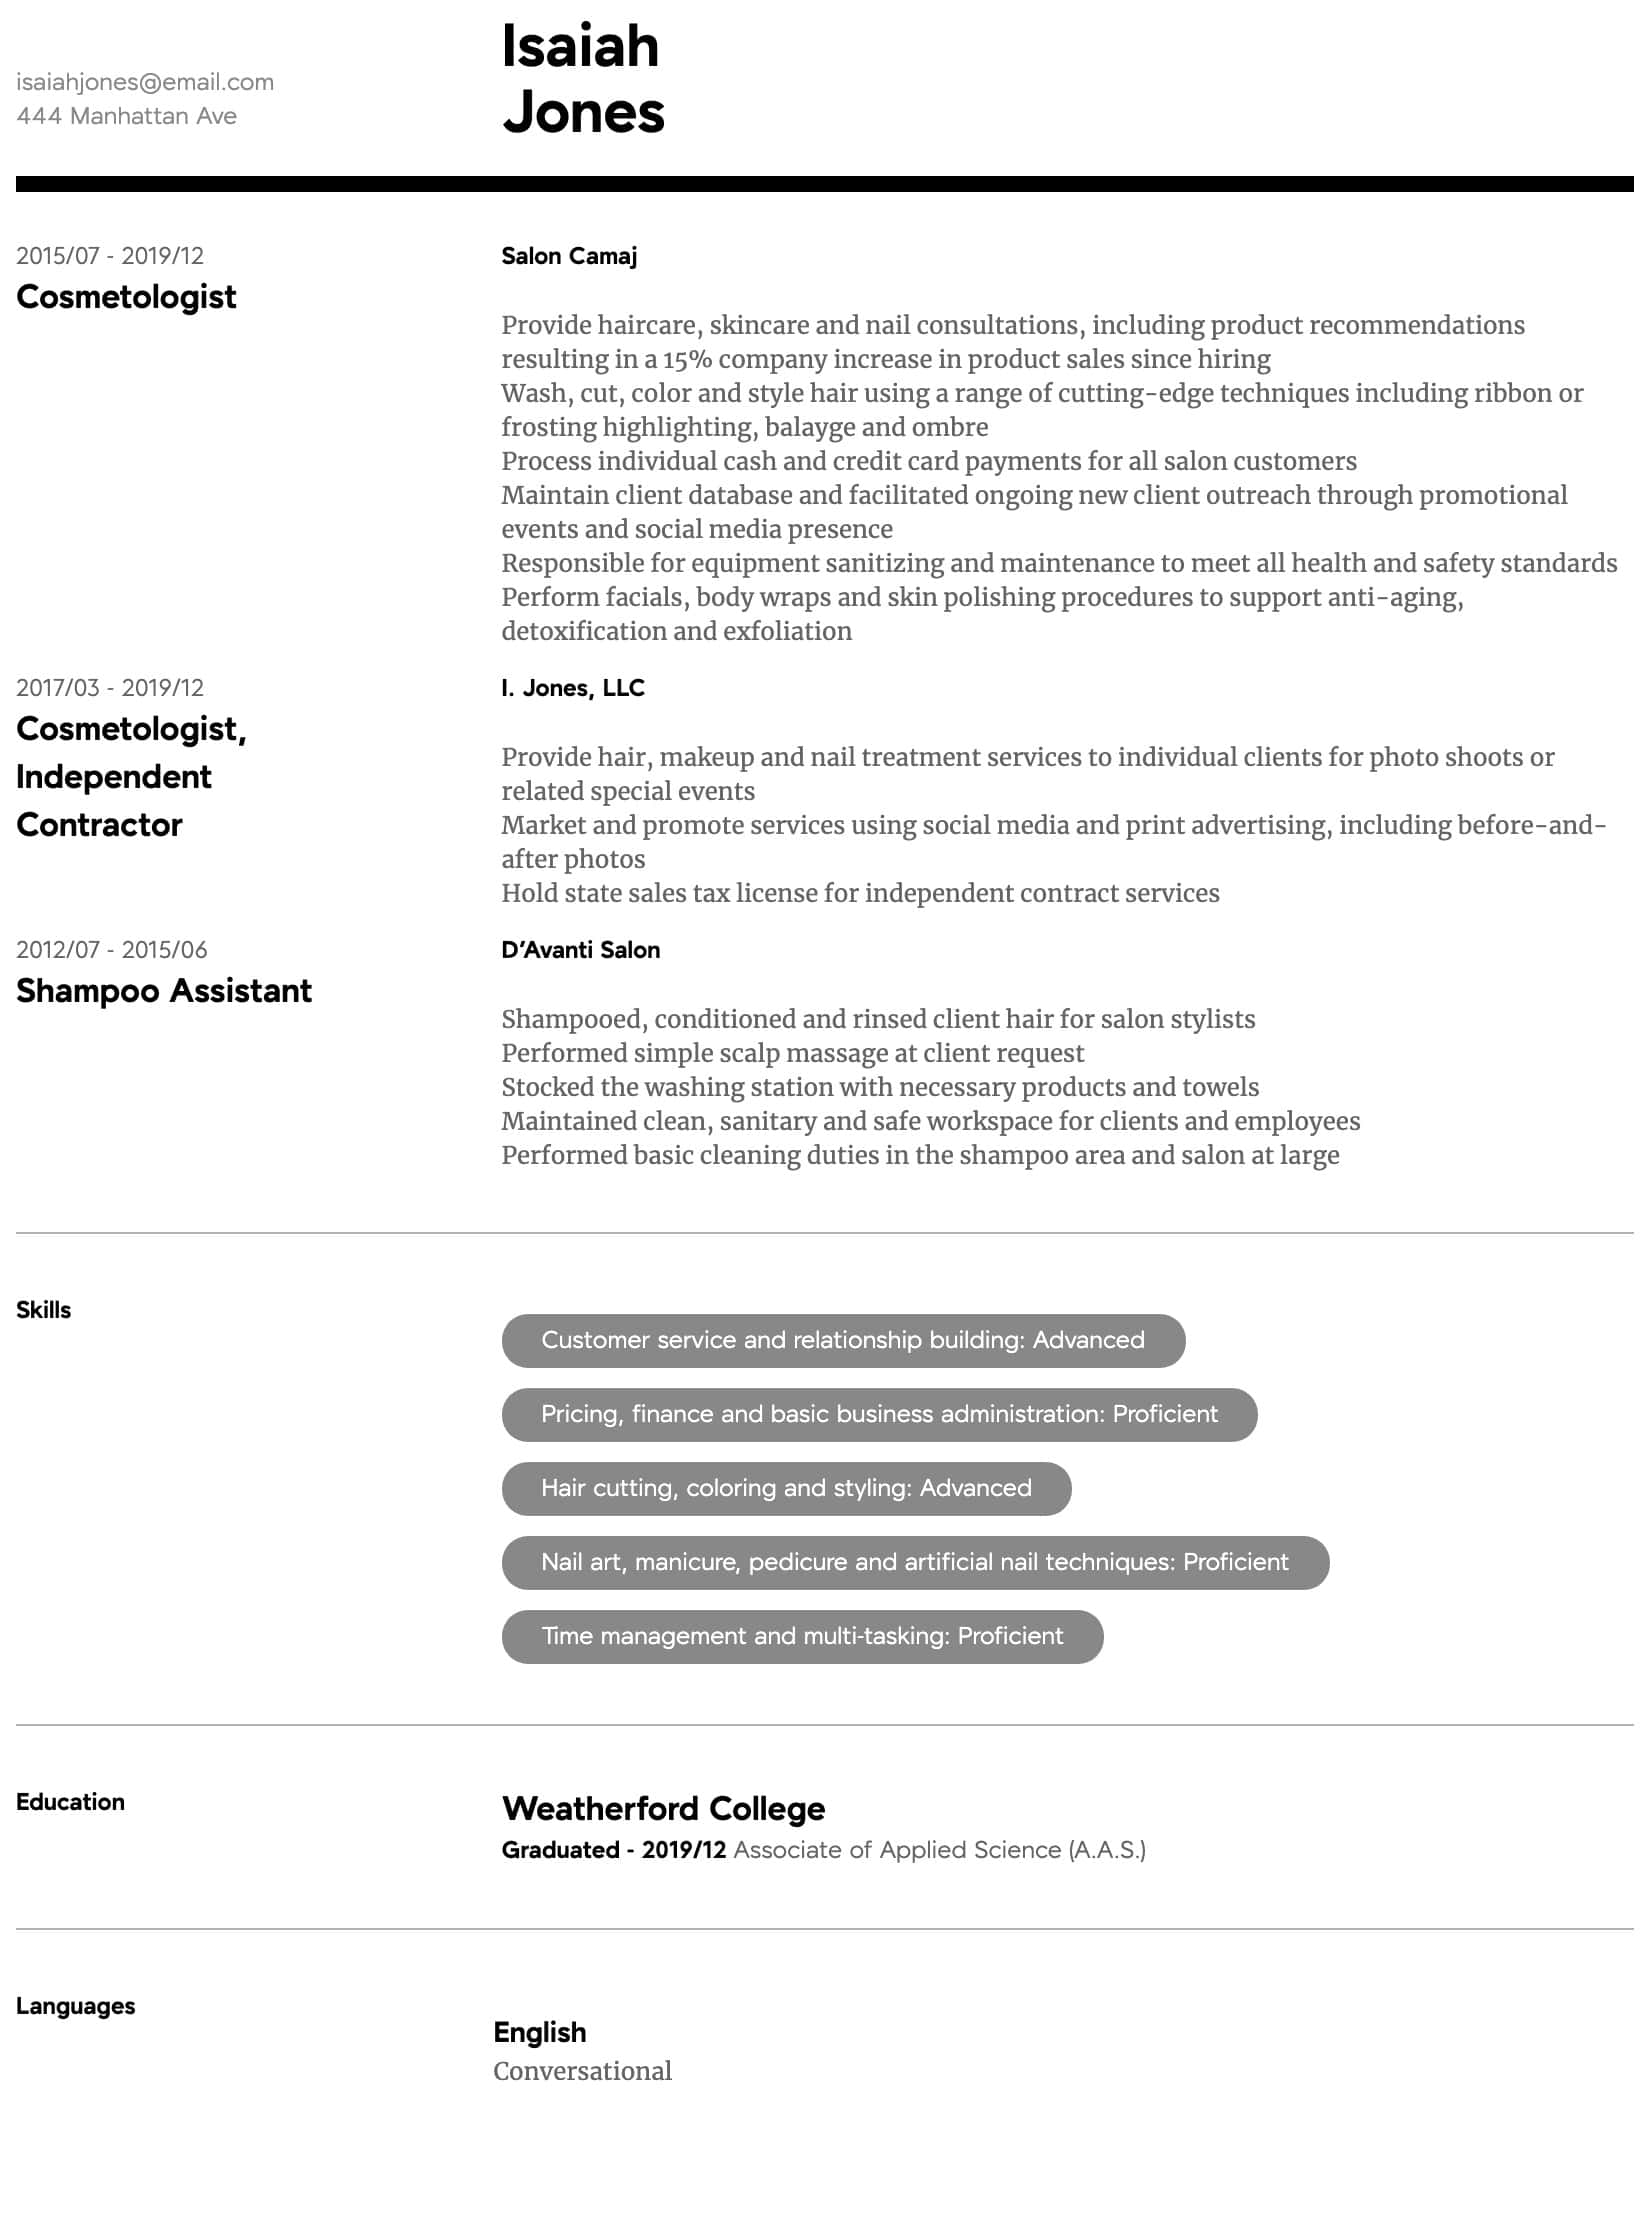 cosmetology resume samples all experience levels skills for intermediate ats approved Resume Cosmetology Skills For Resume